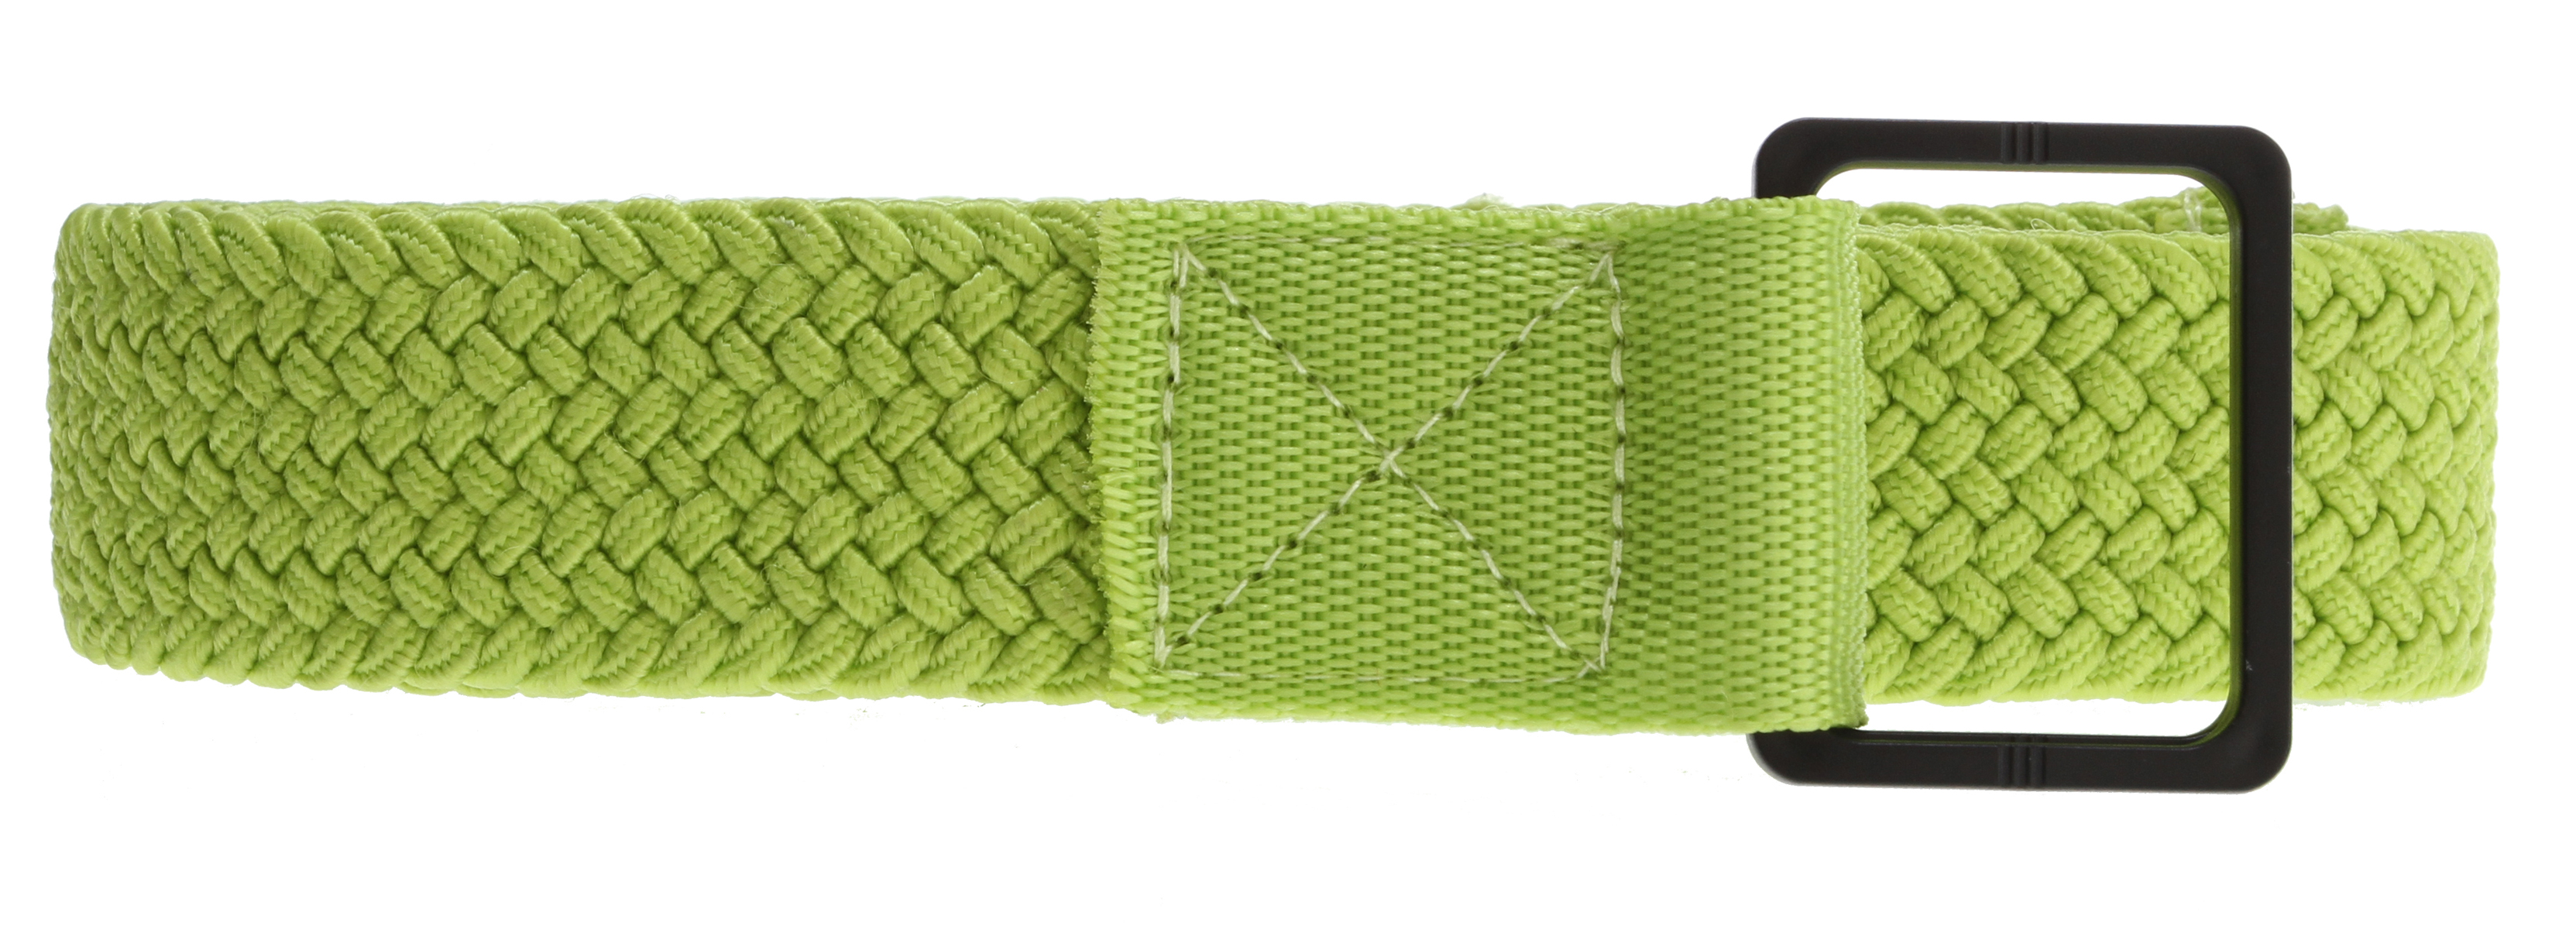 Woven elastic belt, airport security ready. Dcshoecousa woven label. 100% polyester* Cinch buckle * 100% Polyester - $10.95